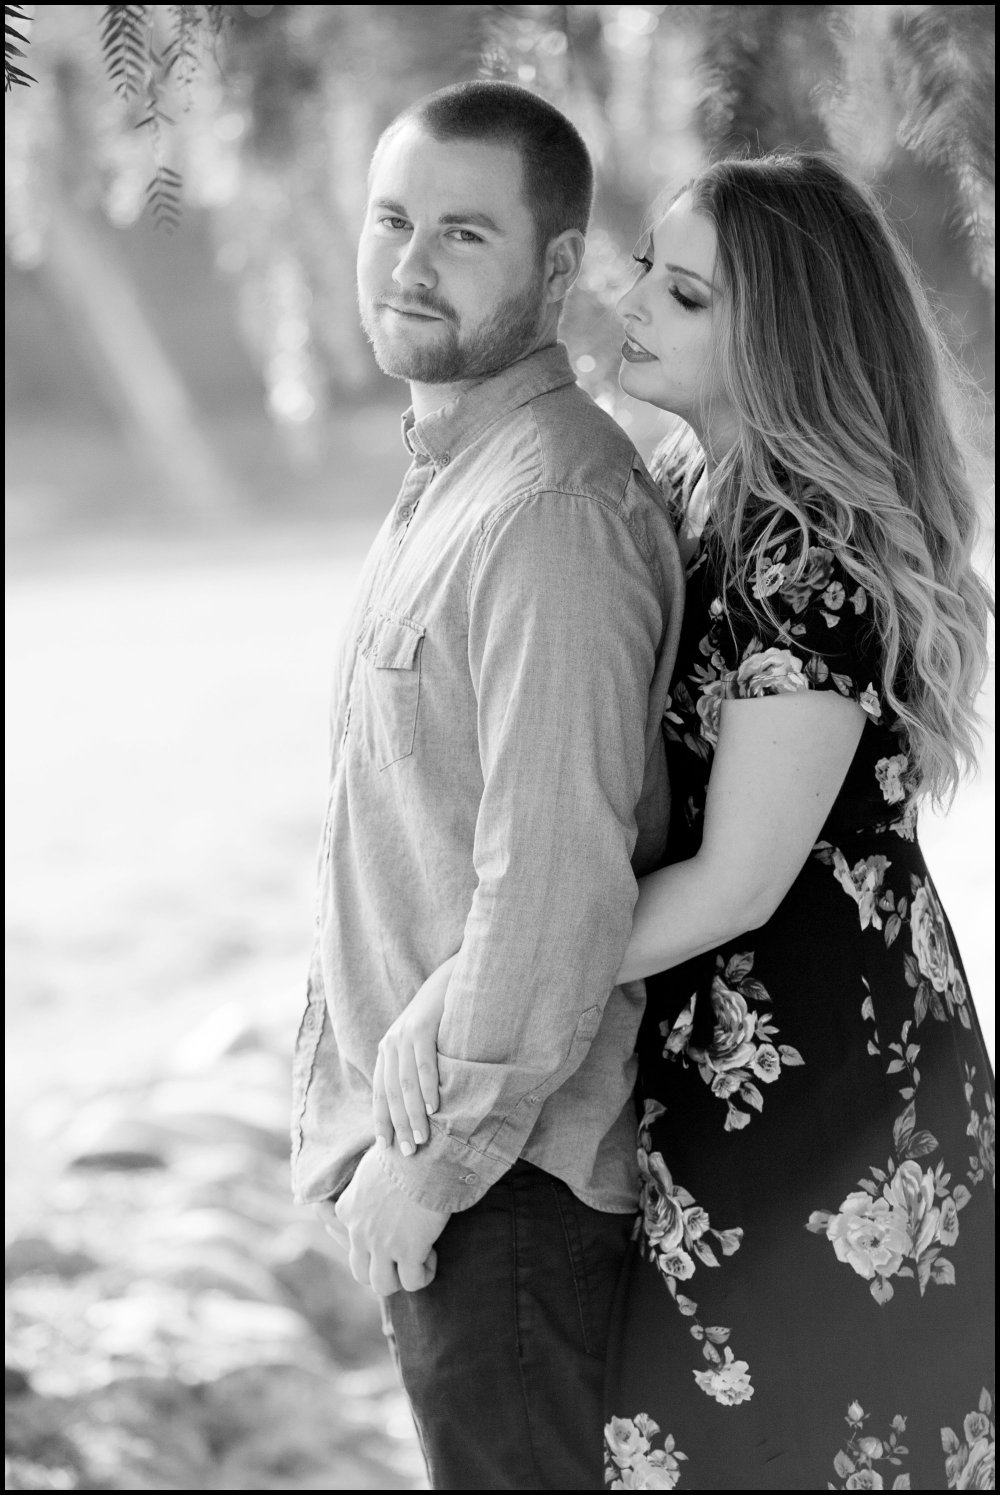 cassia_karin_photography_cj_hillary_simi_valley_california_engagement_shoot_tunnel_trees_love-25.jpg